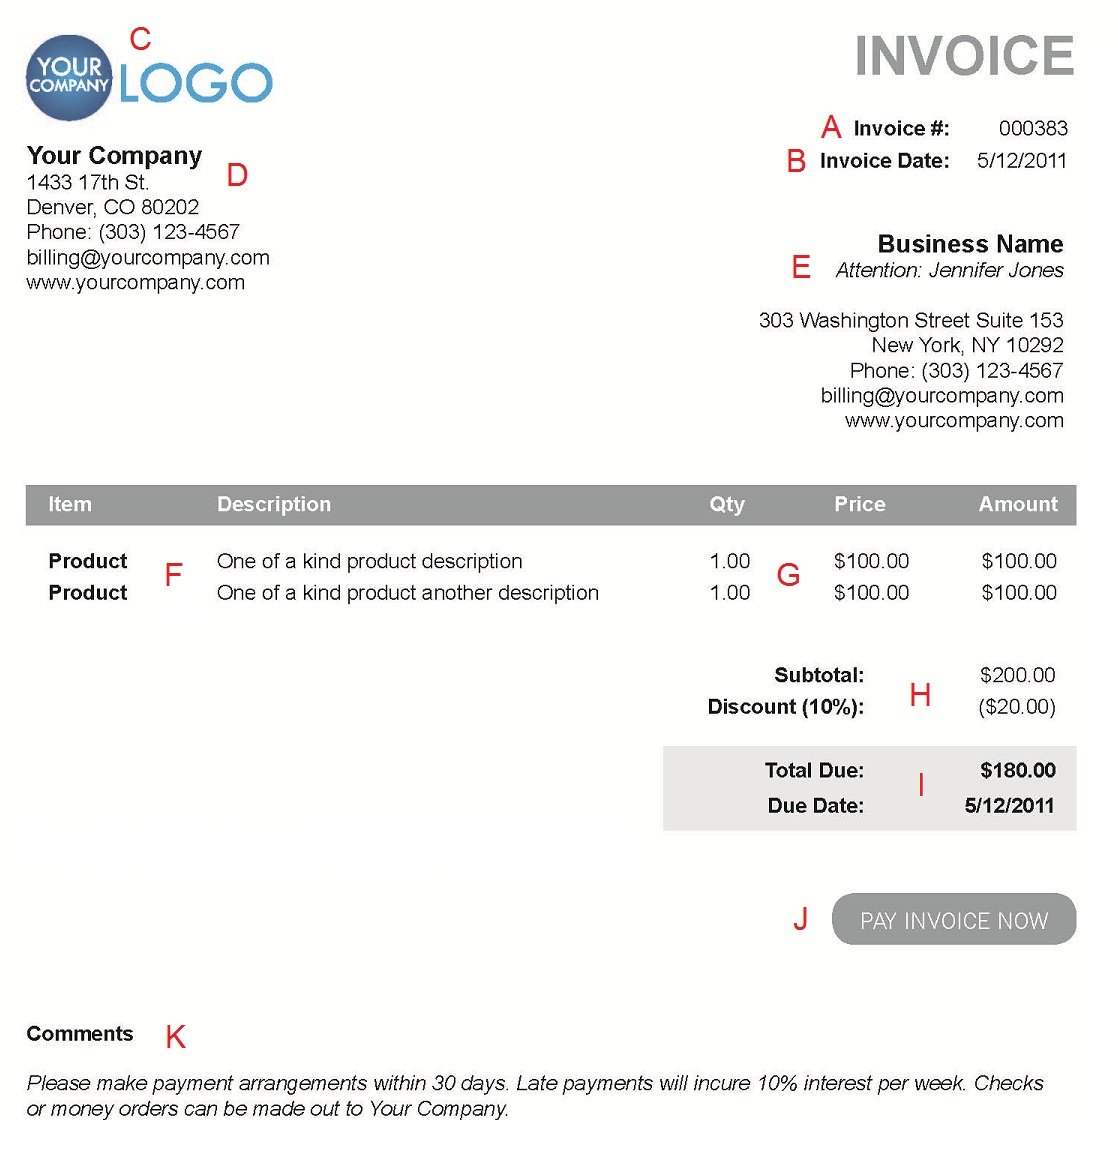 Soulfulpowerus  Splendid The  Different Sections Of An Electronic Payment Invoice With Exciting A  With Cool Invoicing Service Also Free Editable Invoice Template Pdf In Addition Us Customs Invoice And Rental Invoice Template Word As Well As How Do I Send An Invoice On Paypal Additionally Ipad Invoice App From Paysimplecom With Soulfulpowerus  Exciting The  Different Sections Of An Electronic Payment Invoice With Cool A  And Splendid Invoicing Service Also Free Editable Invoice Template Pdf In Addition Us Customs Invoice From Paysimplecom